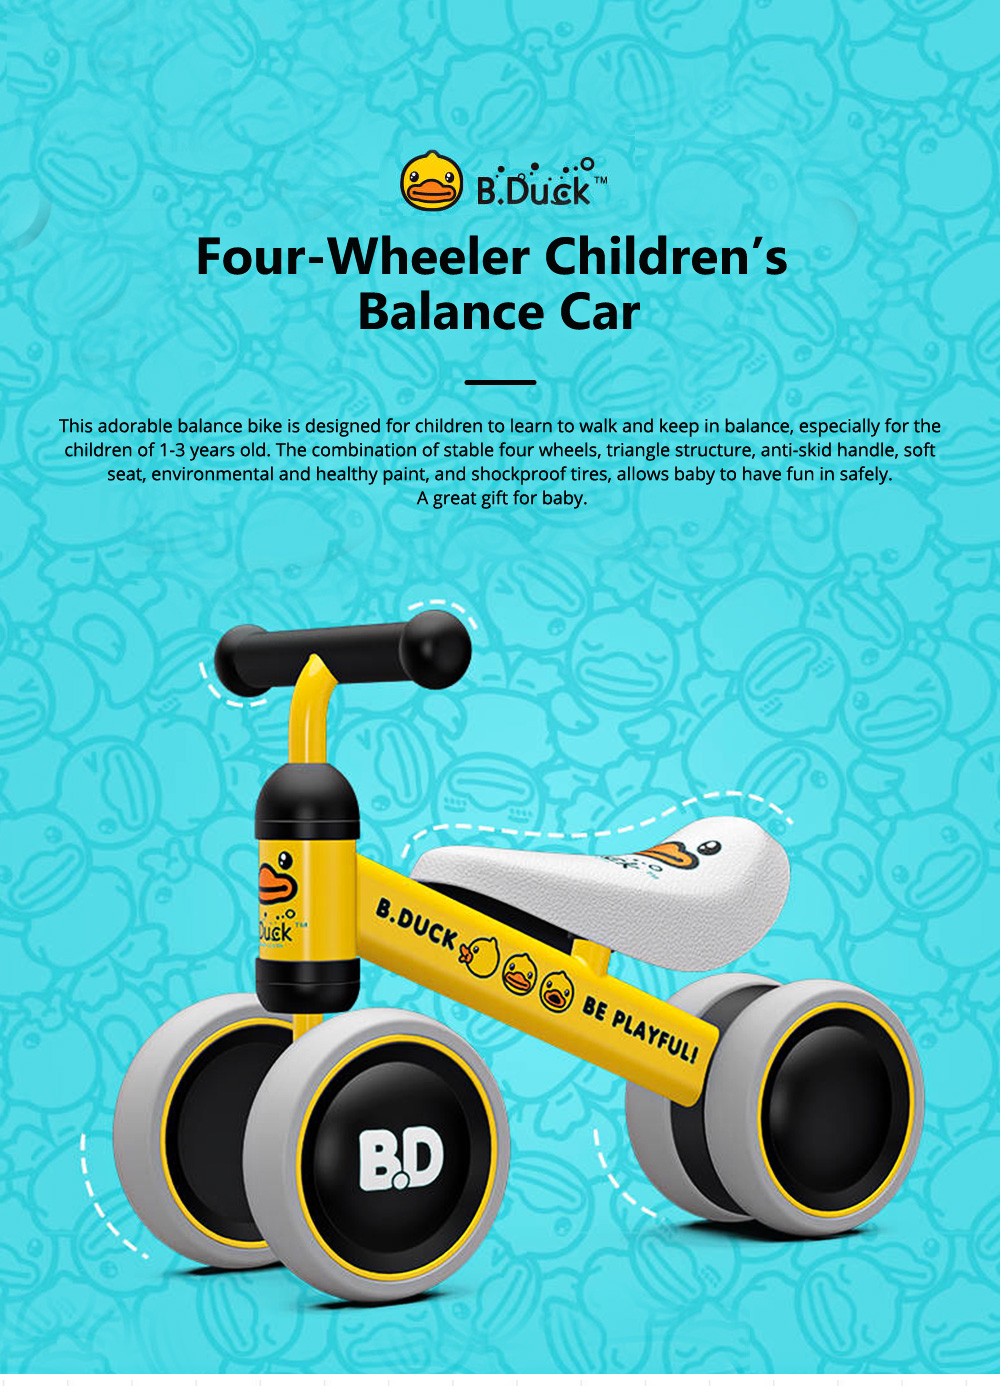 Four-Wheeler Balance Bike for 1-3 Years Old Children Without Pedals Boys and Girls Baby Toy Walker Scooter 0